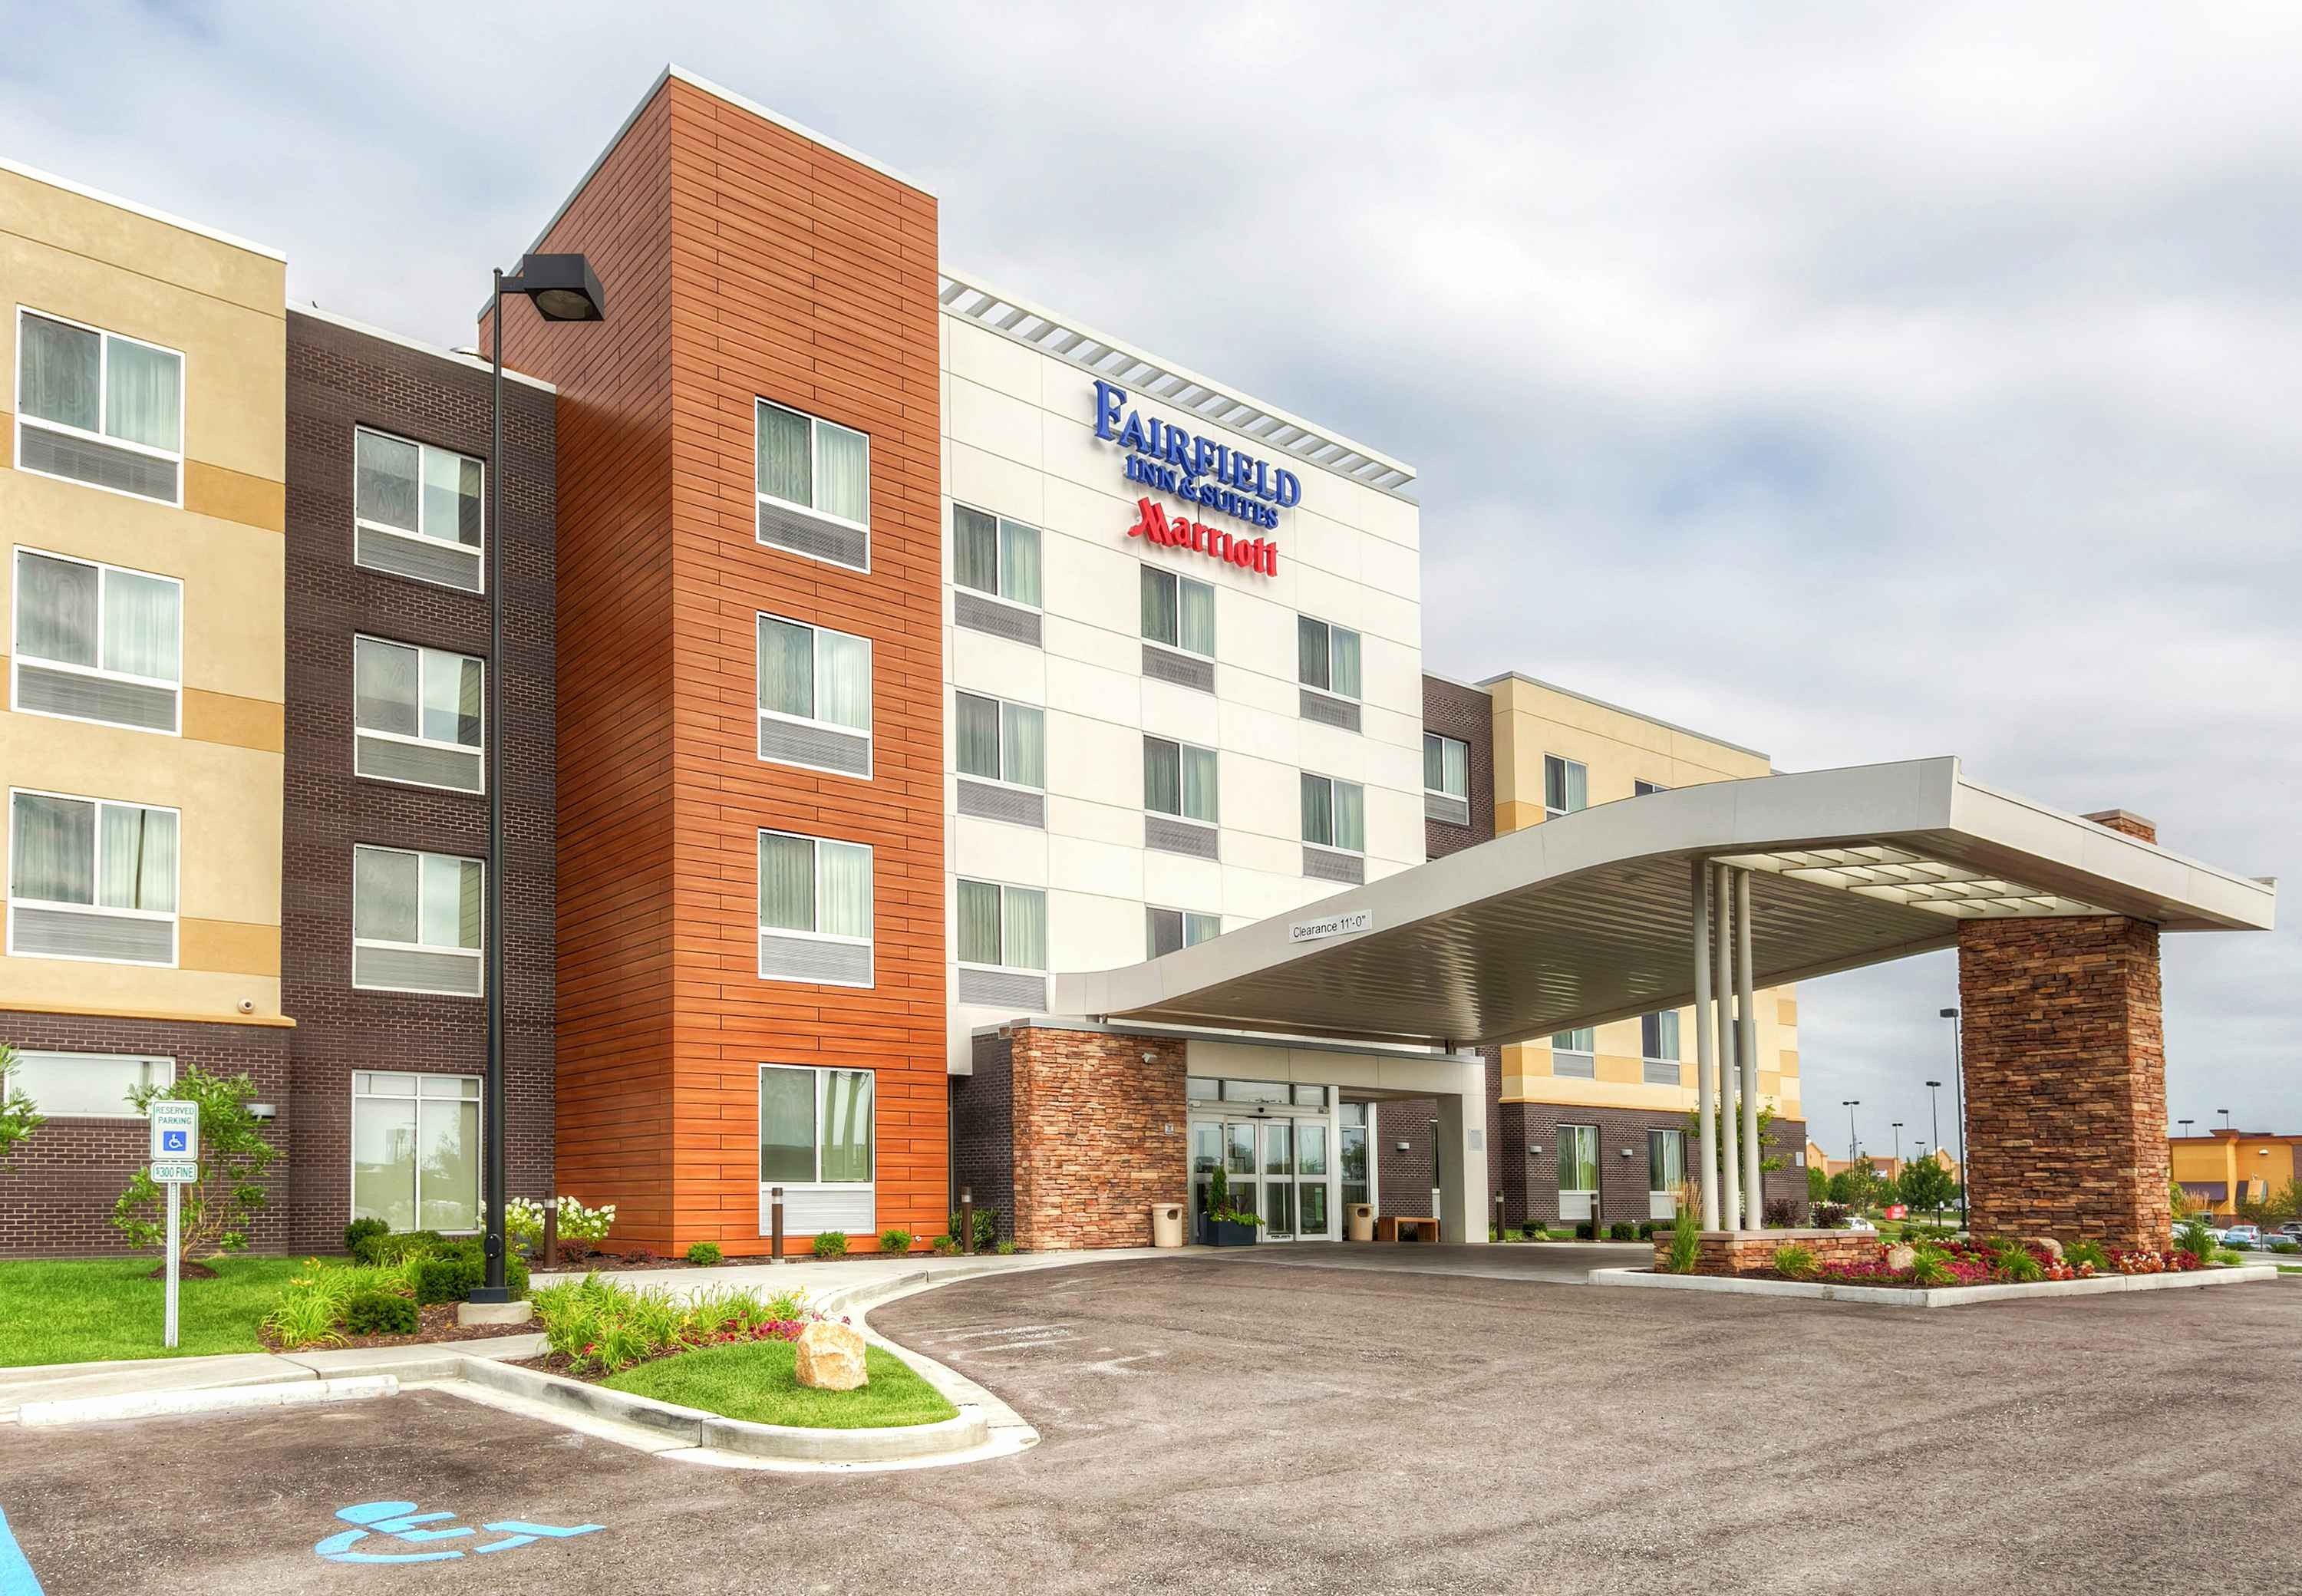 Fairfield inn suites by marriott st louis west The fairfield